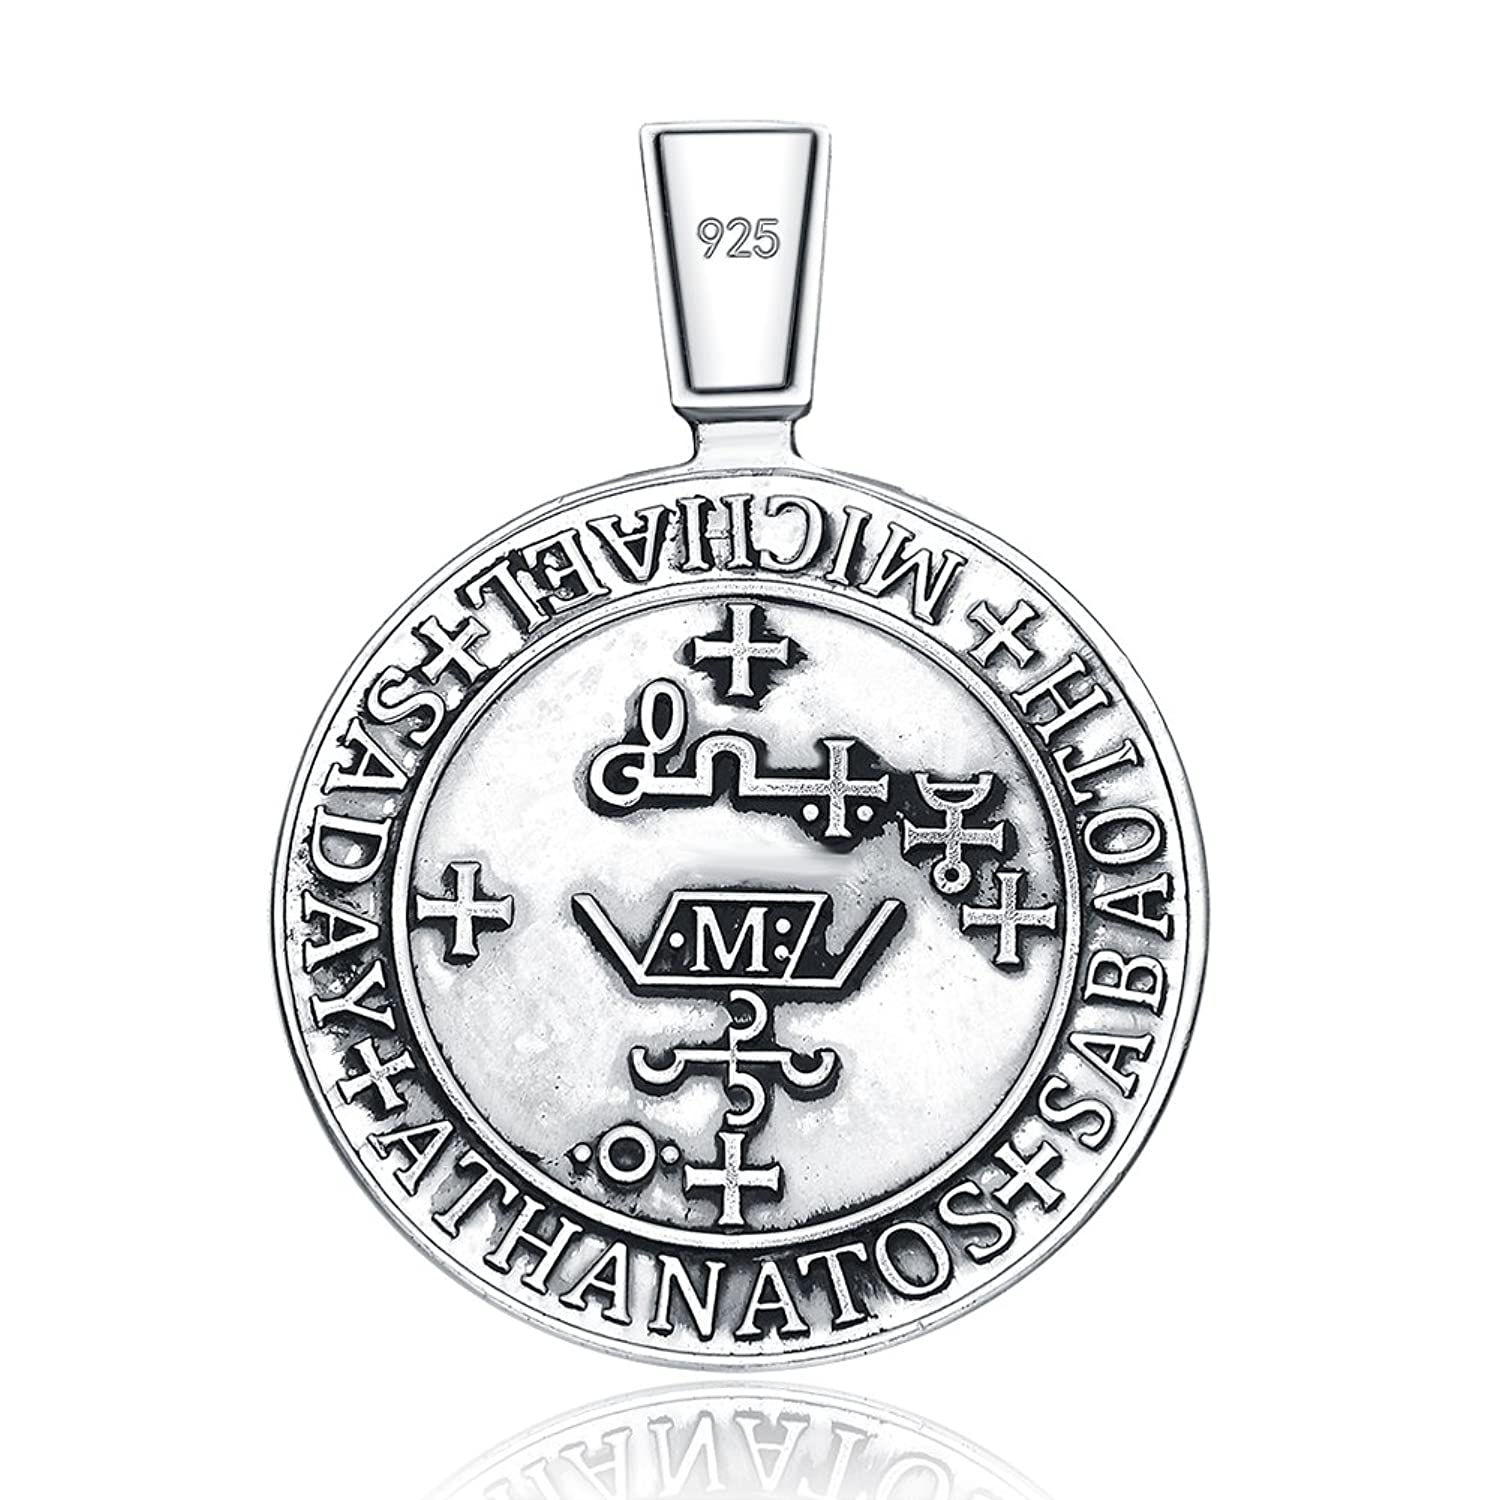 Amazon archangel stmichael seal protection medal christian amazon archangel stmichael seal protection medal christian talisman sterling 925 silver pendant necklace jewelry biocorpaavc Images